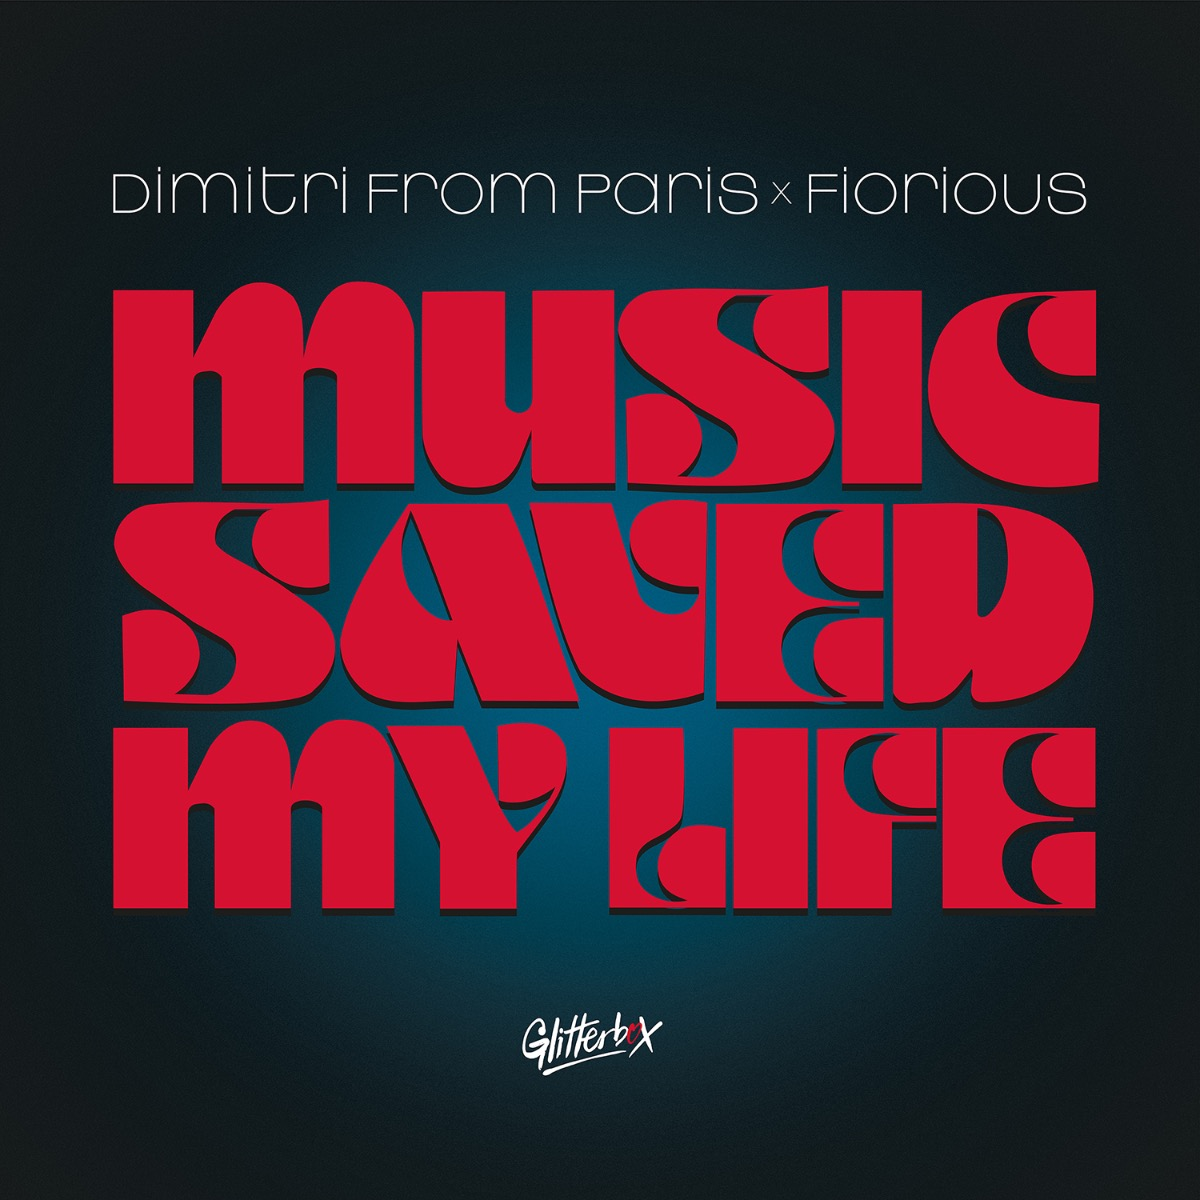 Dimitri x Fiorious Music Saved My Life